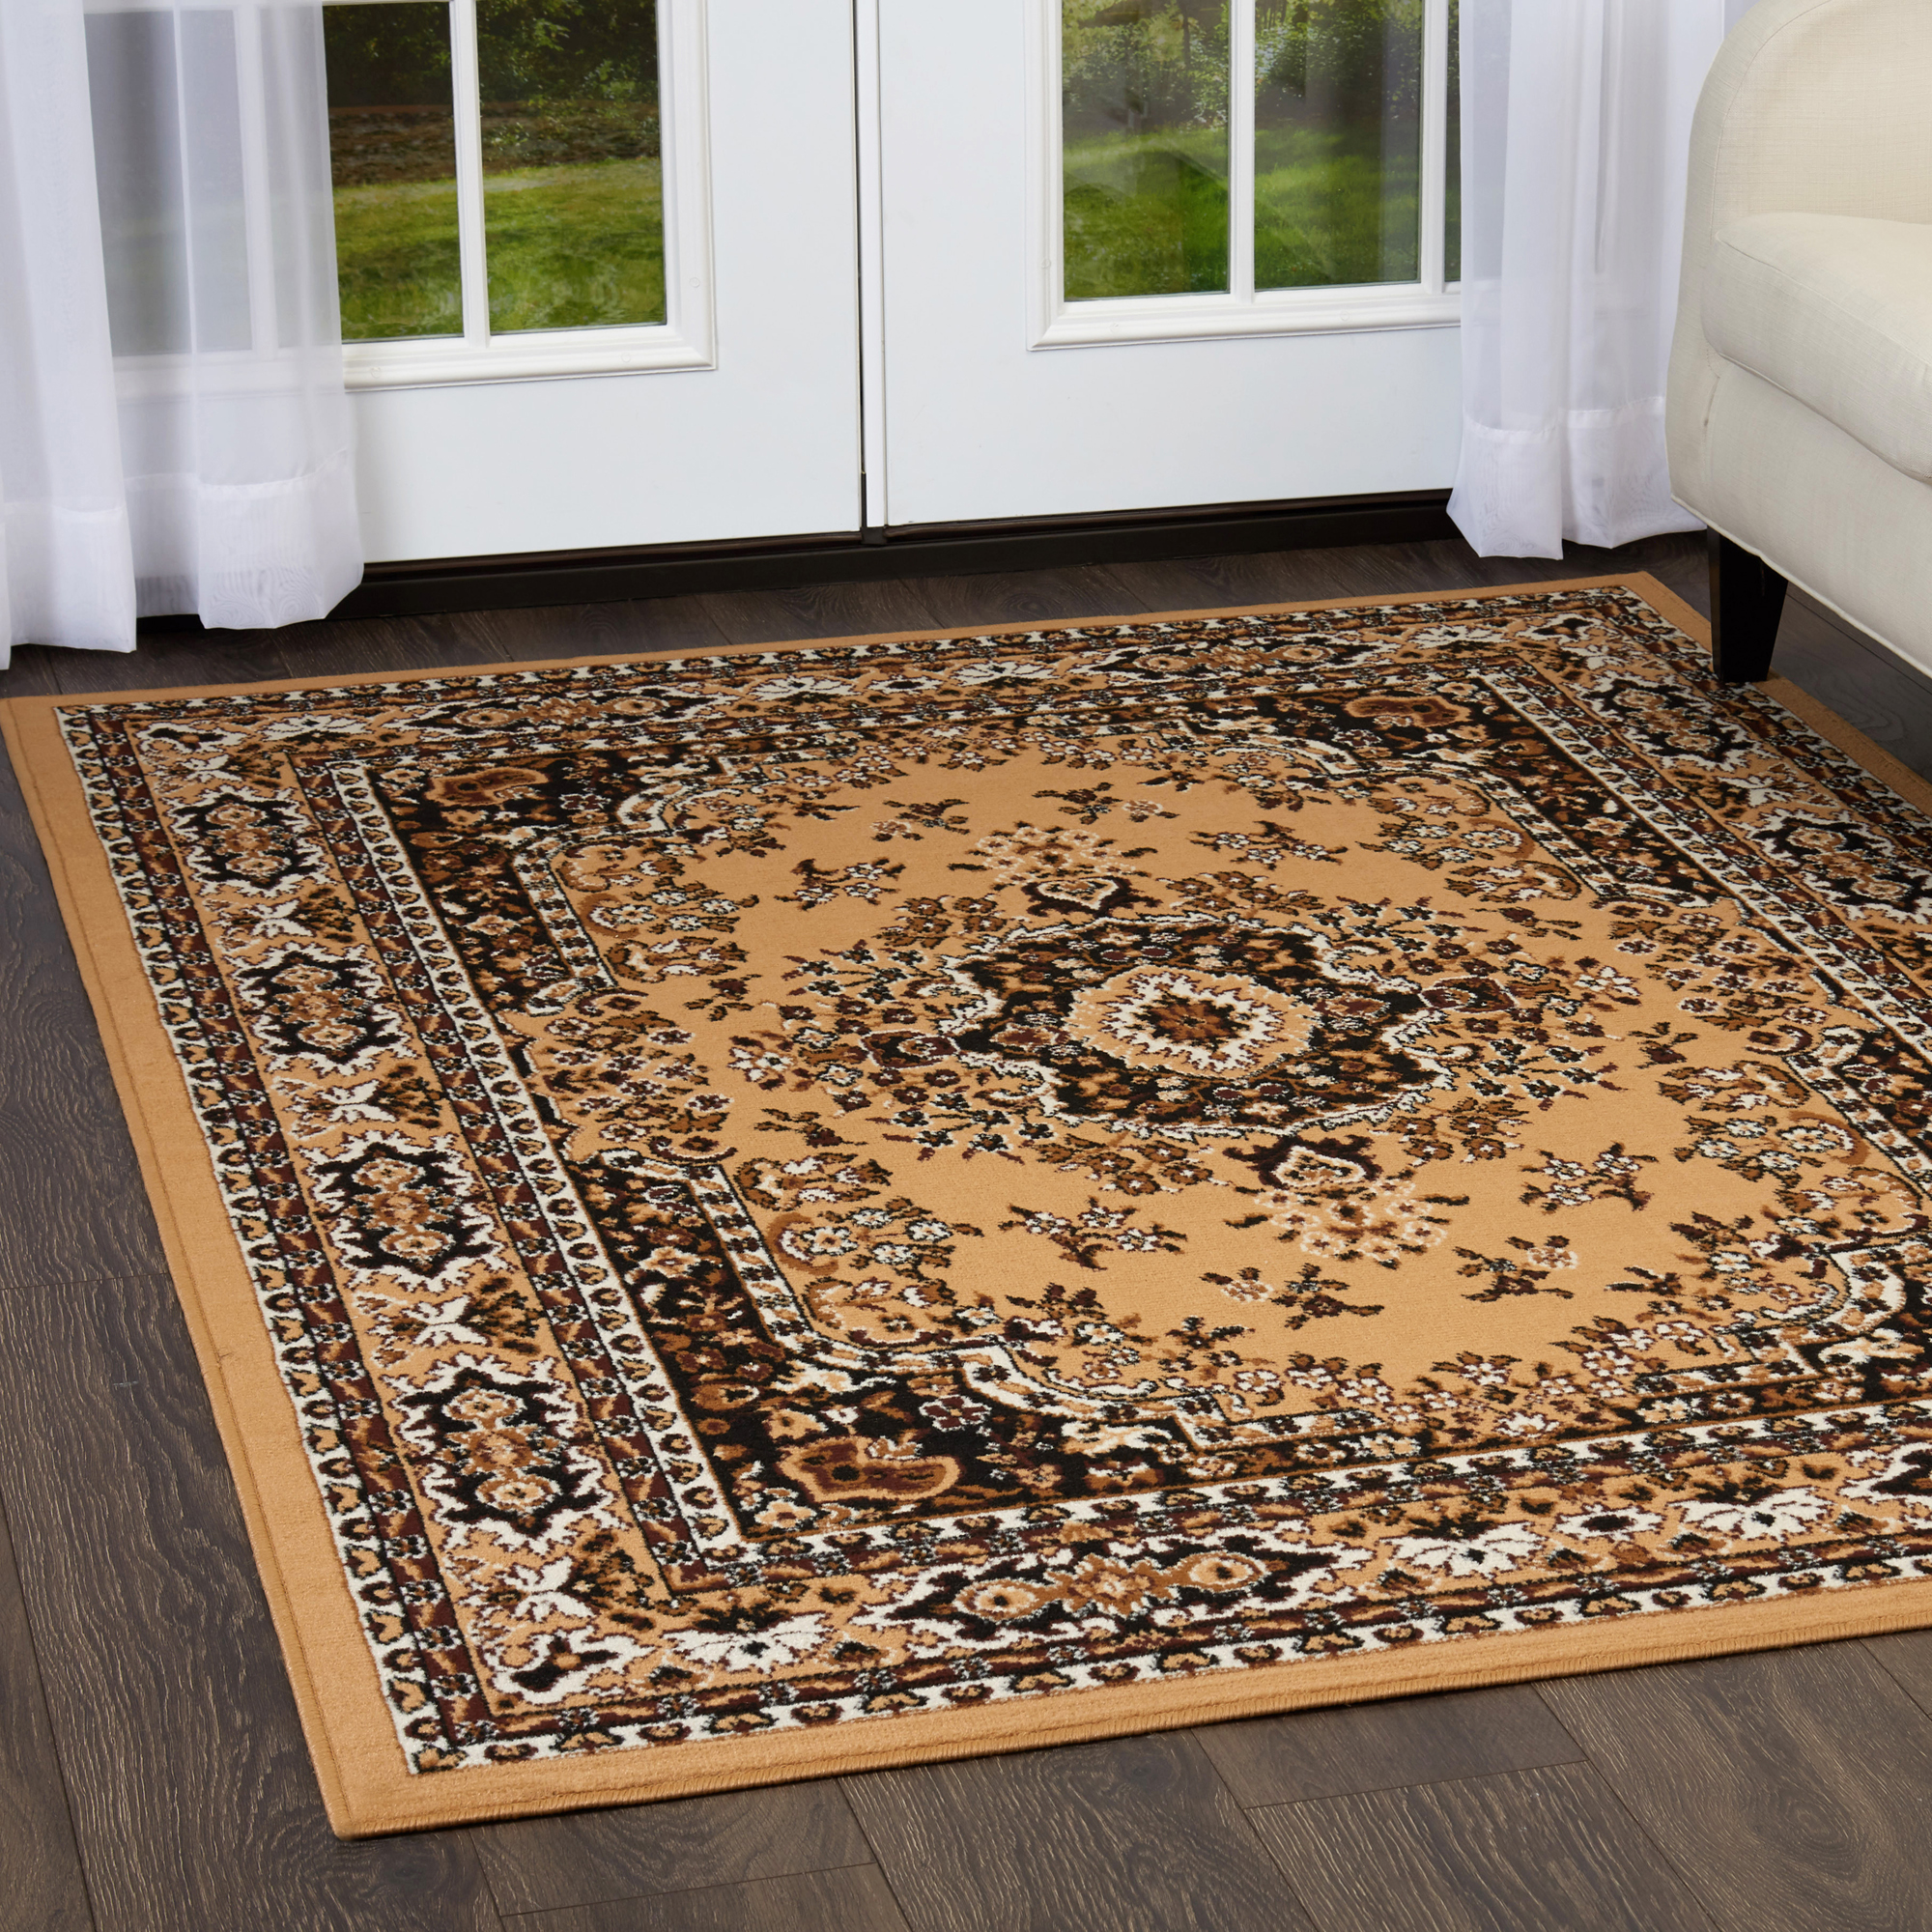 Traditional Medallion Beige Persian 3 Pcs Area Rug